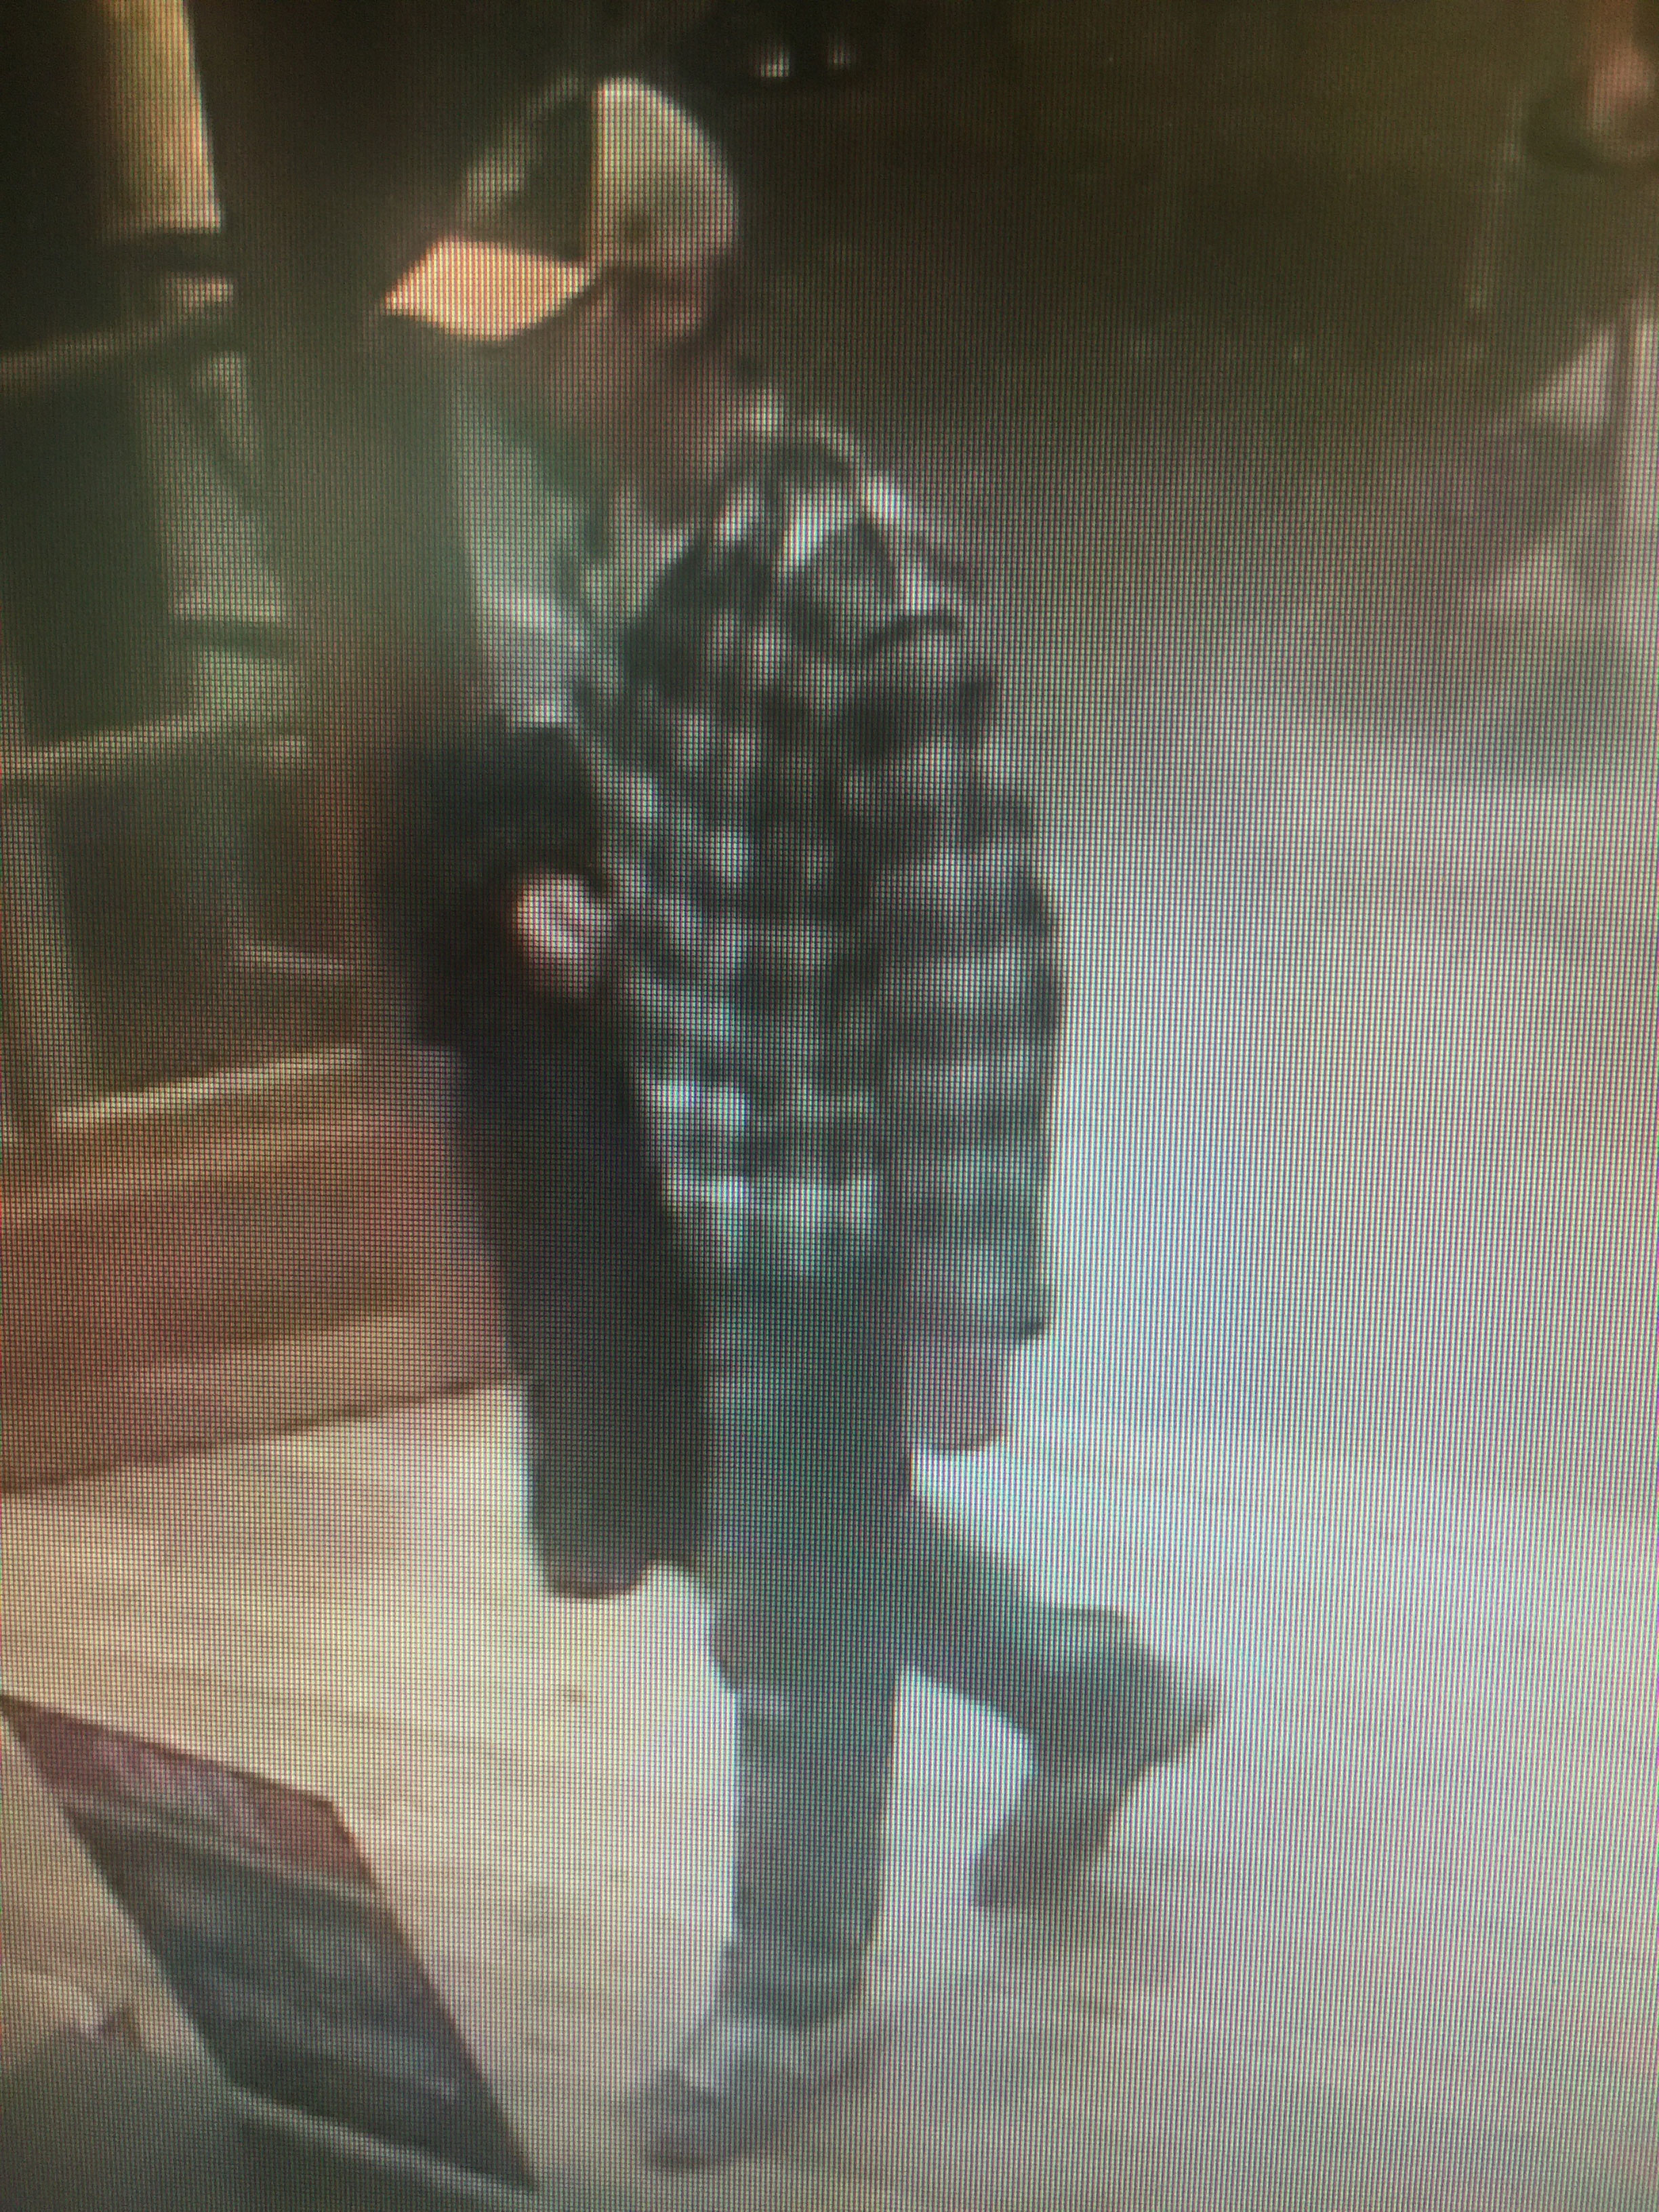 A man walked out of Cabela's last Saturday with two assault rifles worth $2,500 apiece, Springfield Police said. (Photo via SPD)